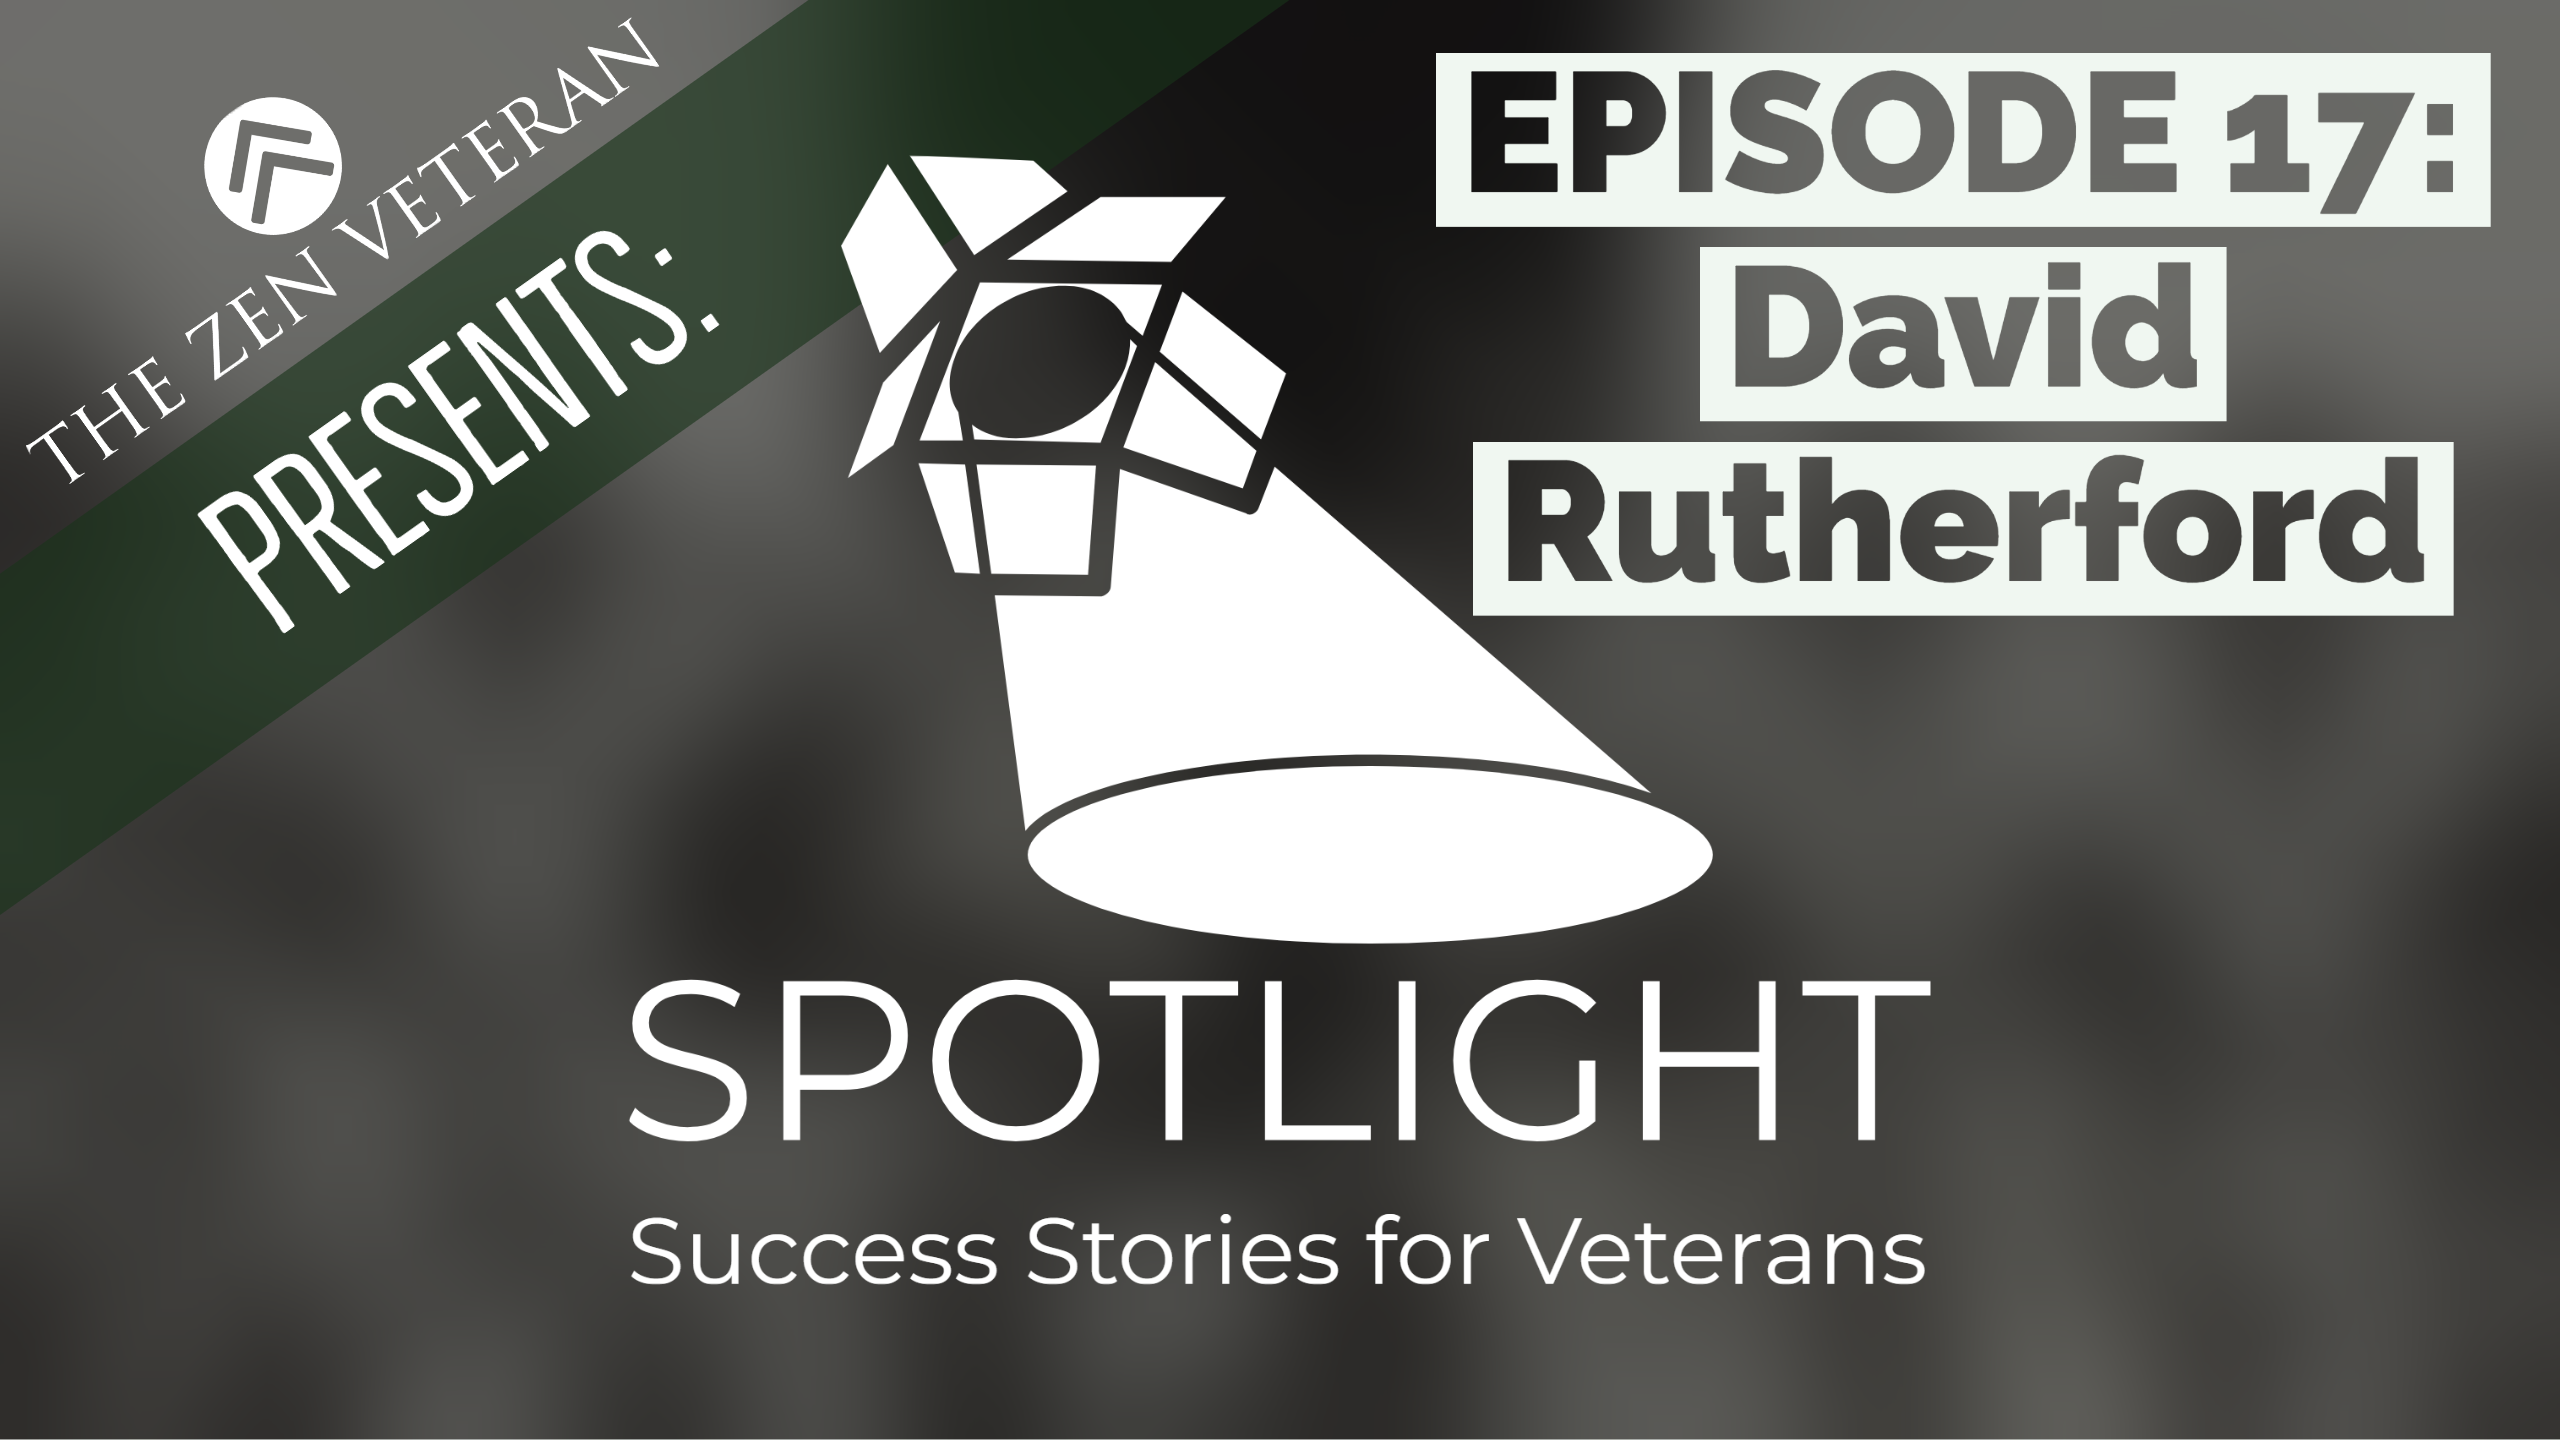 David Rutherford – Veterans Becoming Hippies, the Destructiveness of the Hero Archetype, and Relieving Your Expectation of Perfection (Episode #17)